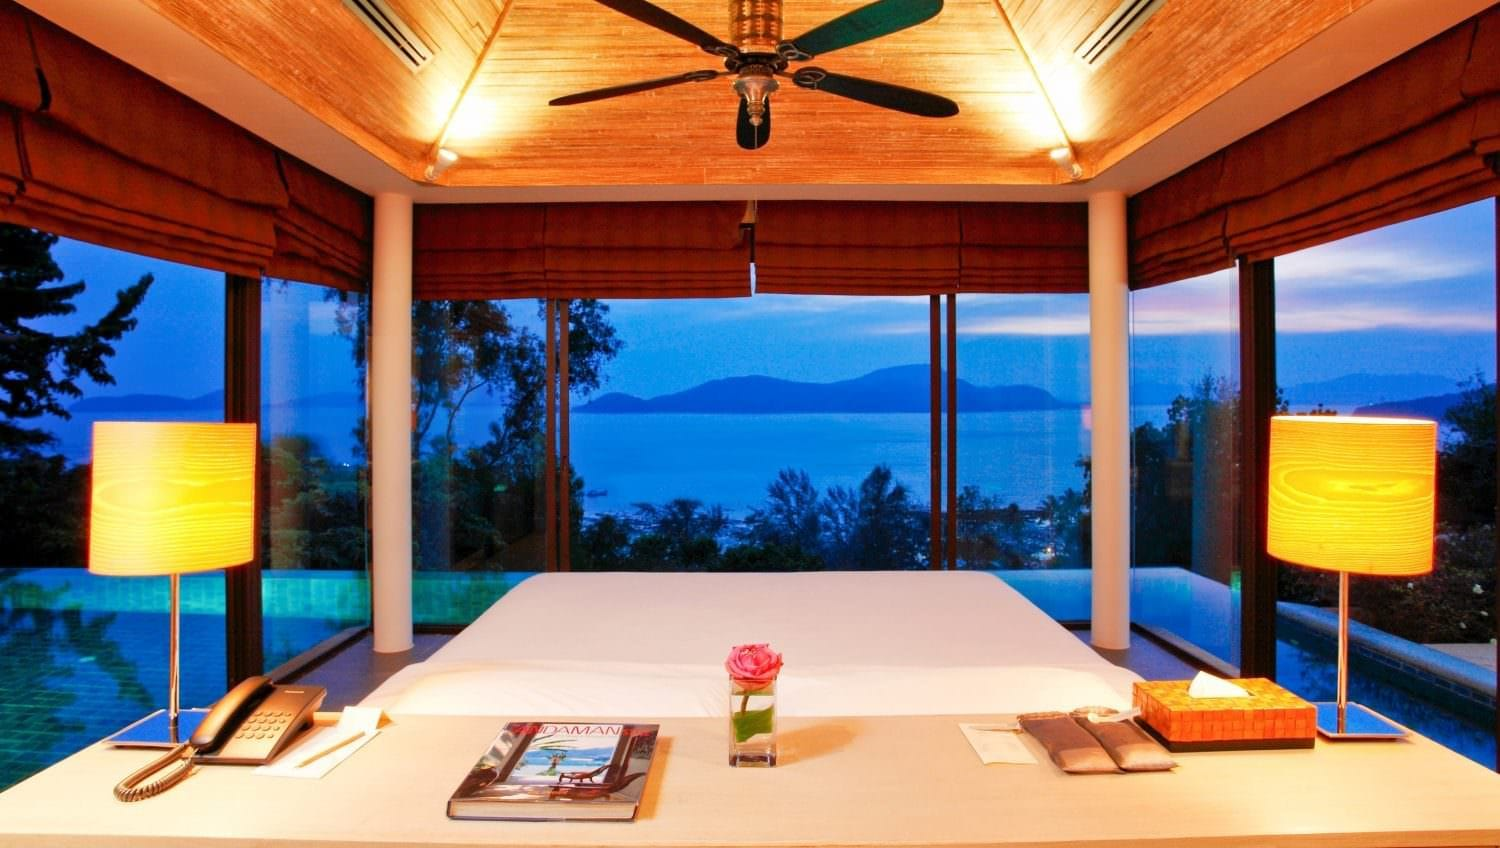 2-Two-Bedroom-Pool-Villa-Ocean-View-Phuket-Sri-Panwa-Luxury-Resort-Spa